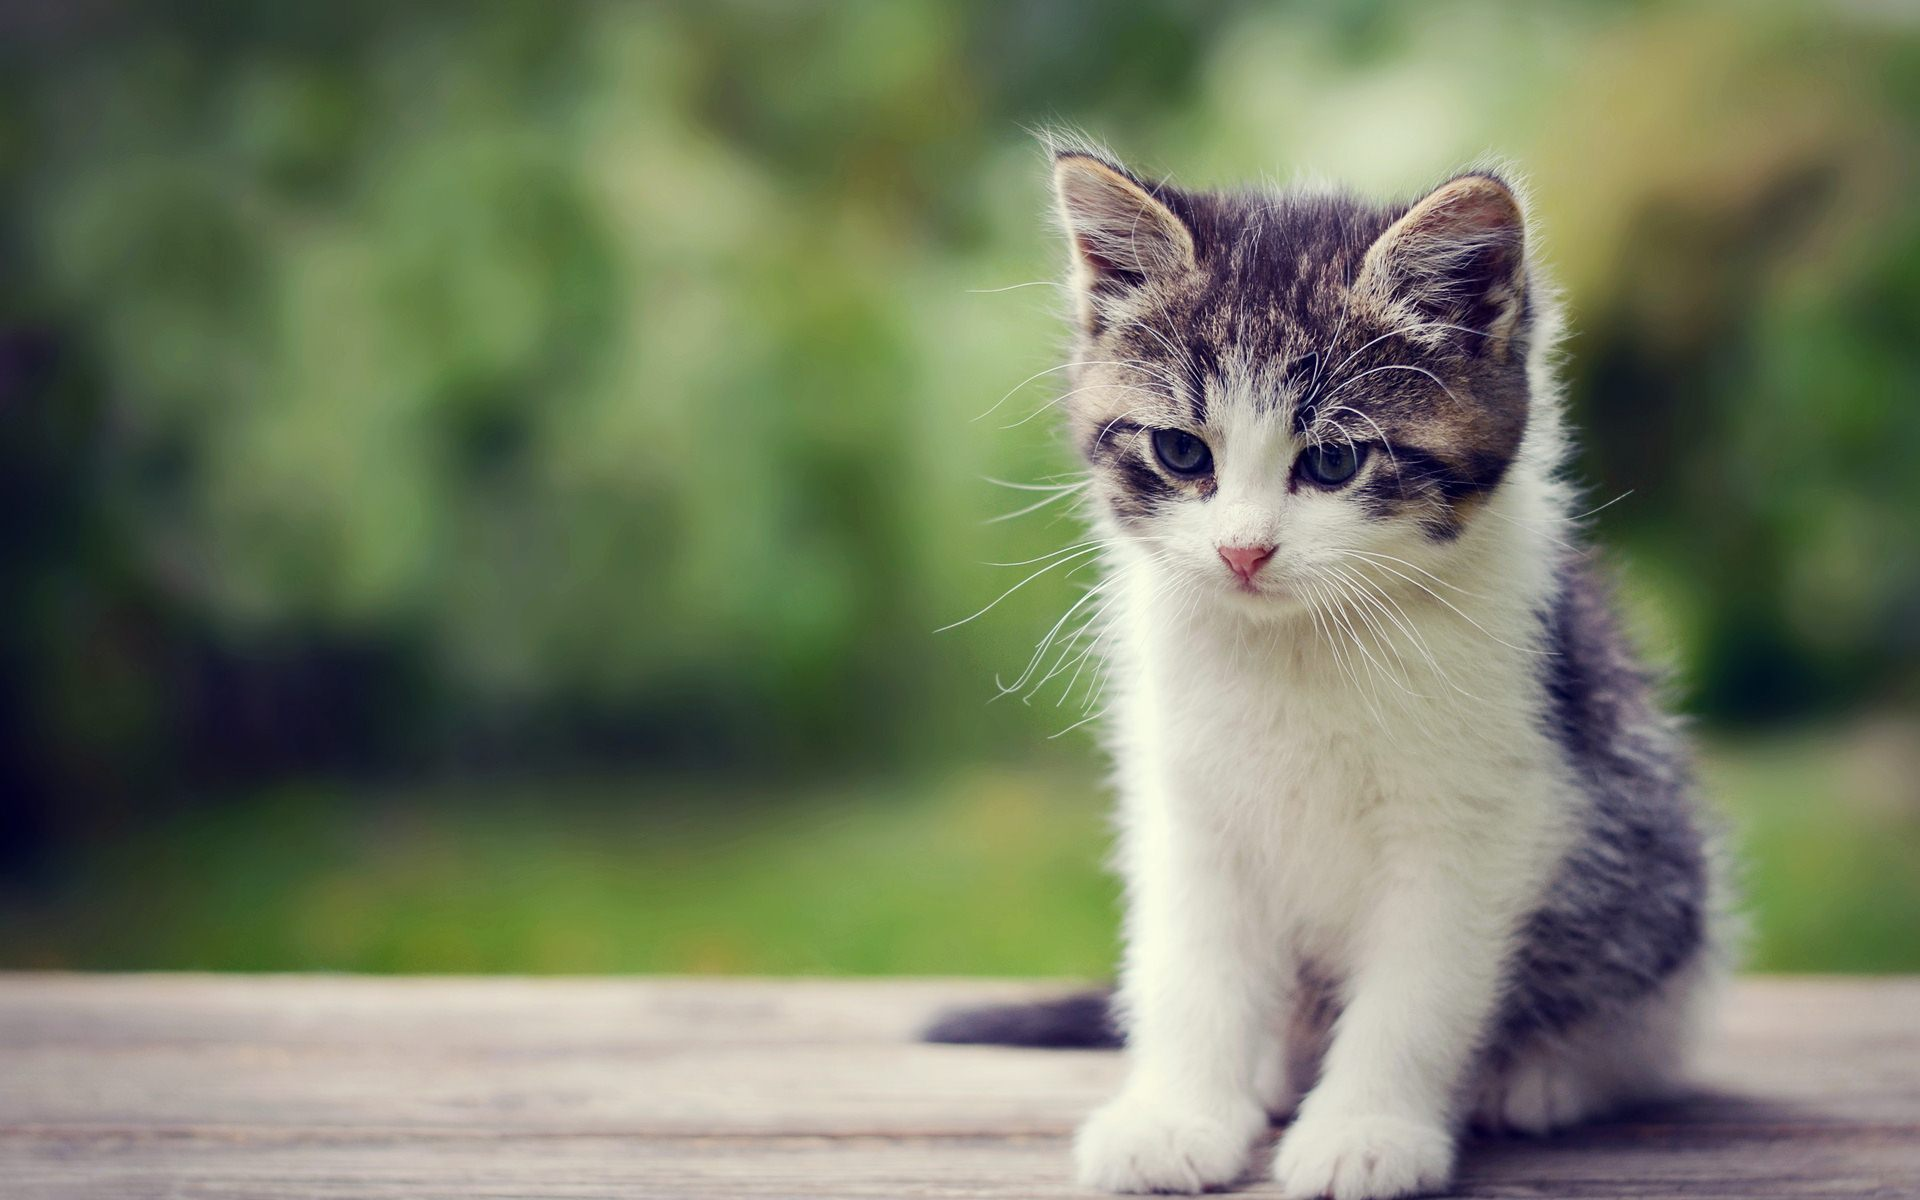 Cute Kitten Wallpapers 44 Wallpapers – Adorable Wallpapers